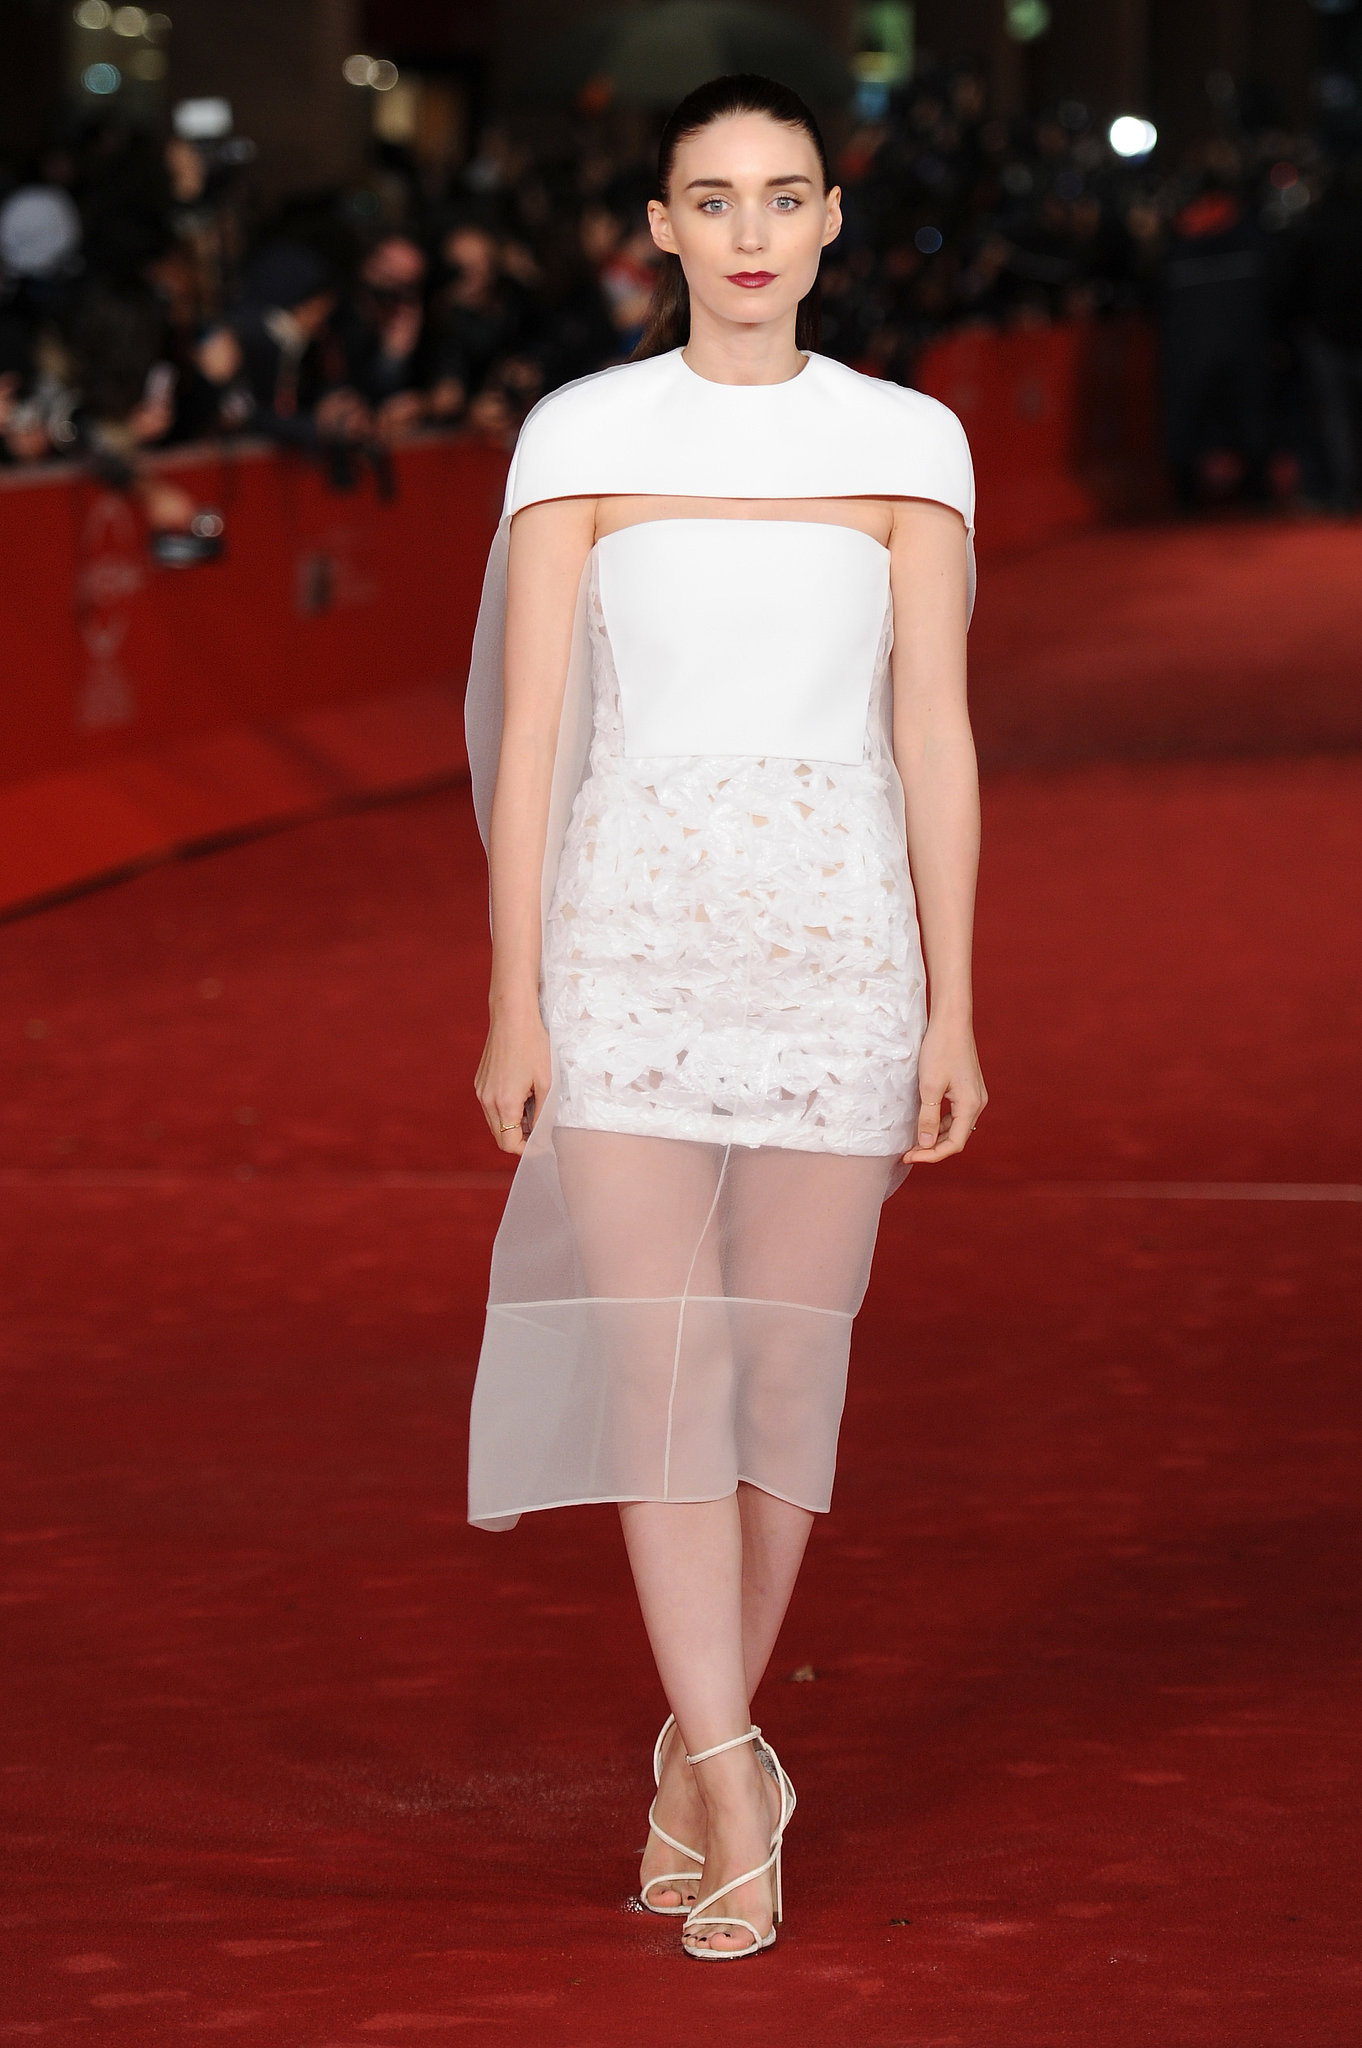 Rooney Mara gave sheer a shot while on the red carpet for Her in an alluring white Balenciaga design.